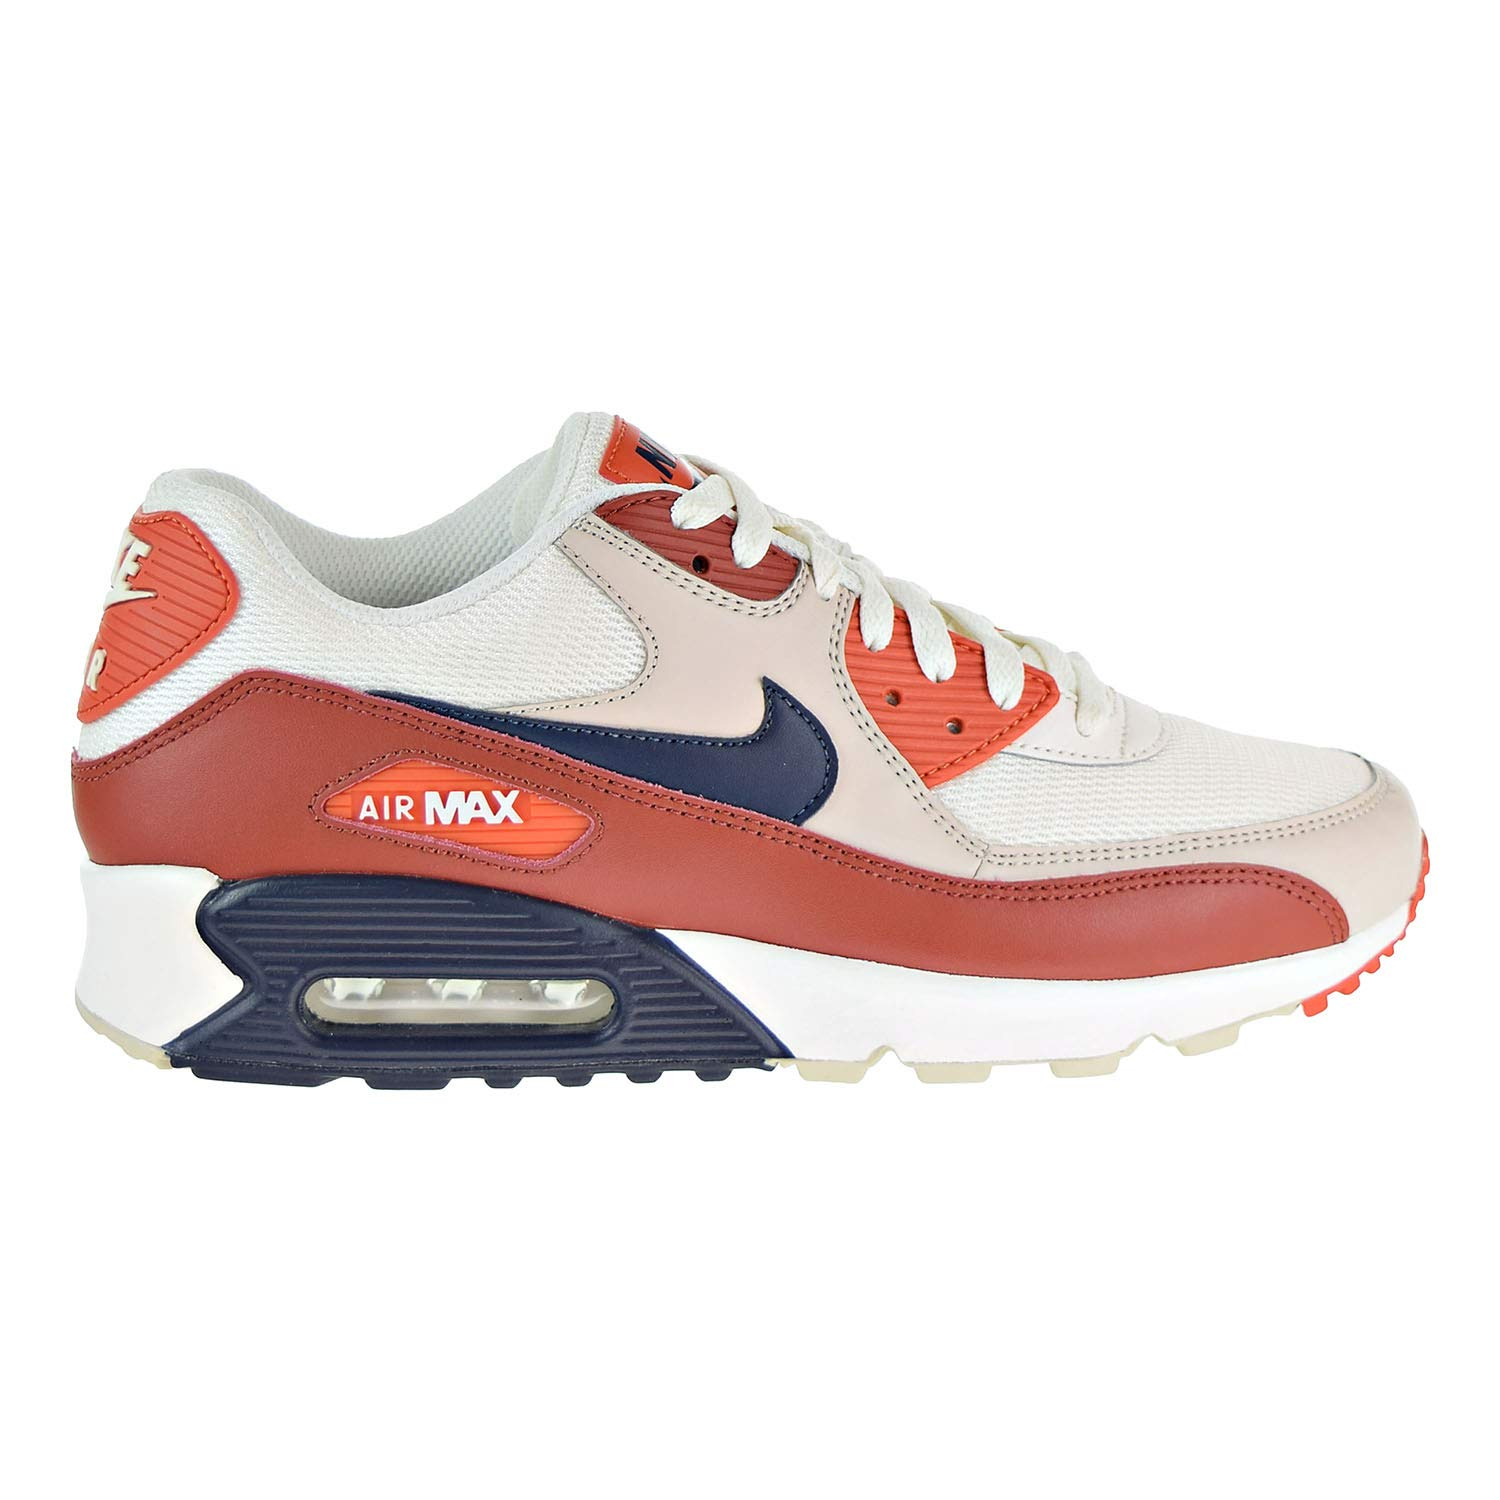 big sale edc83 368d9 Galleon - NIKE Mens Air Max 90 Essential Running Shoes Mars Stone Obsidian Vintage  Coral AJ1285-600 Size 8.5